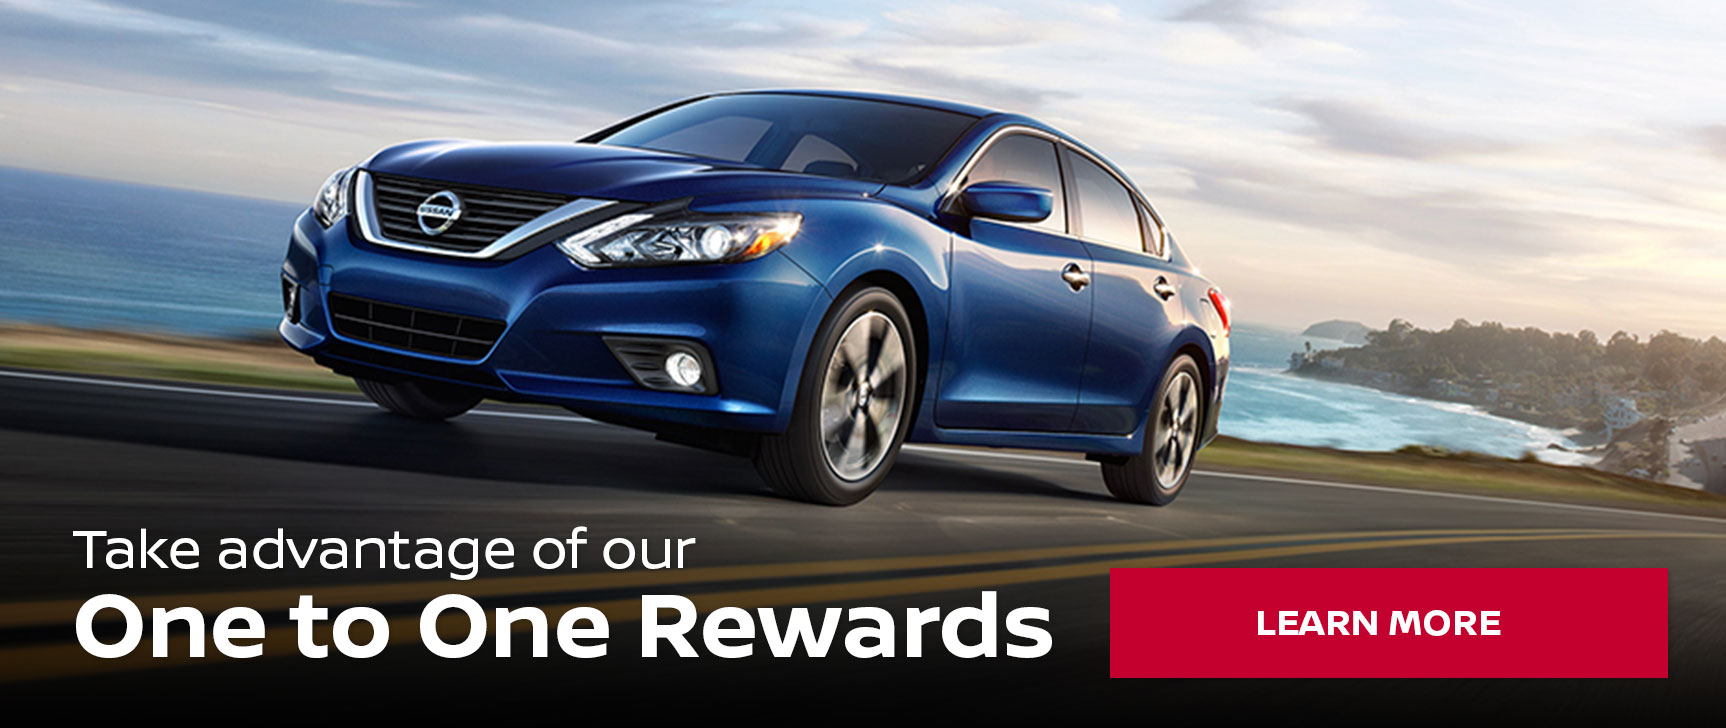 Nissan One to One Rewards Program